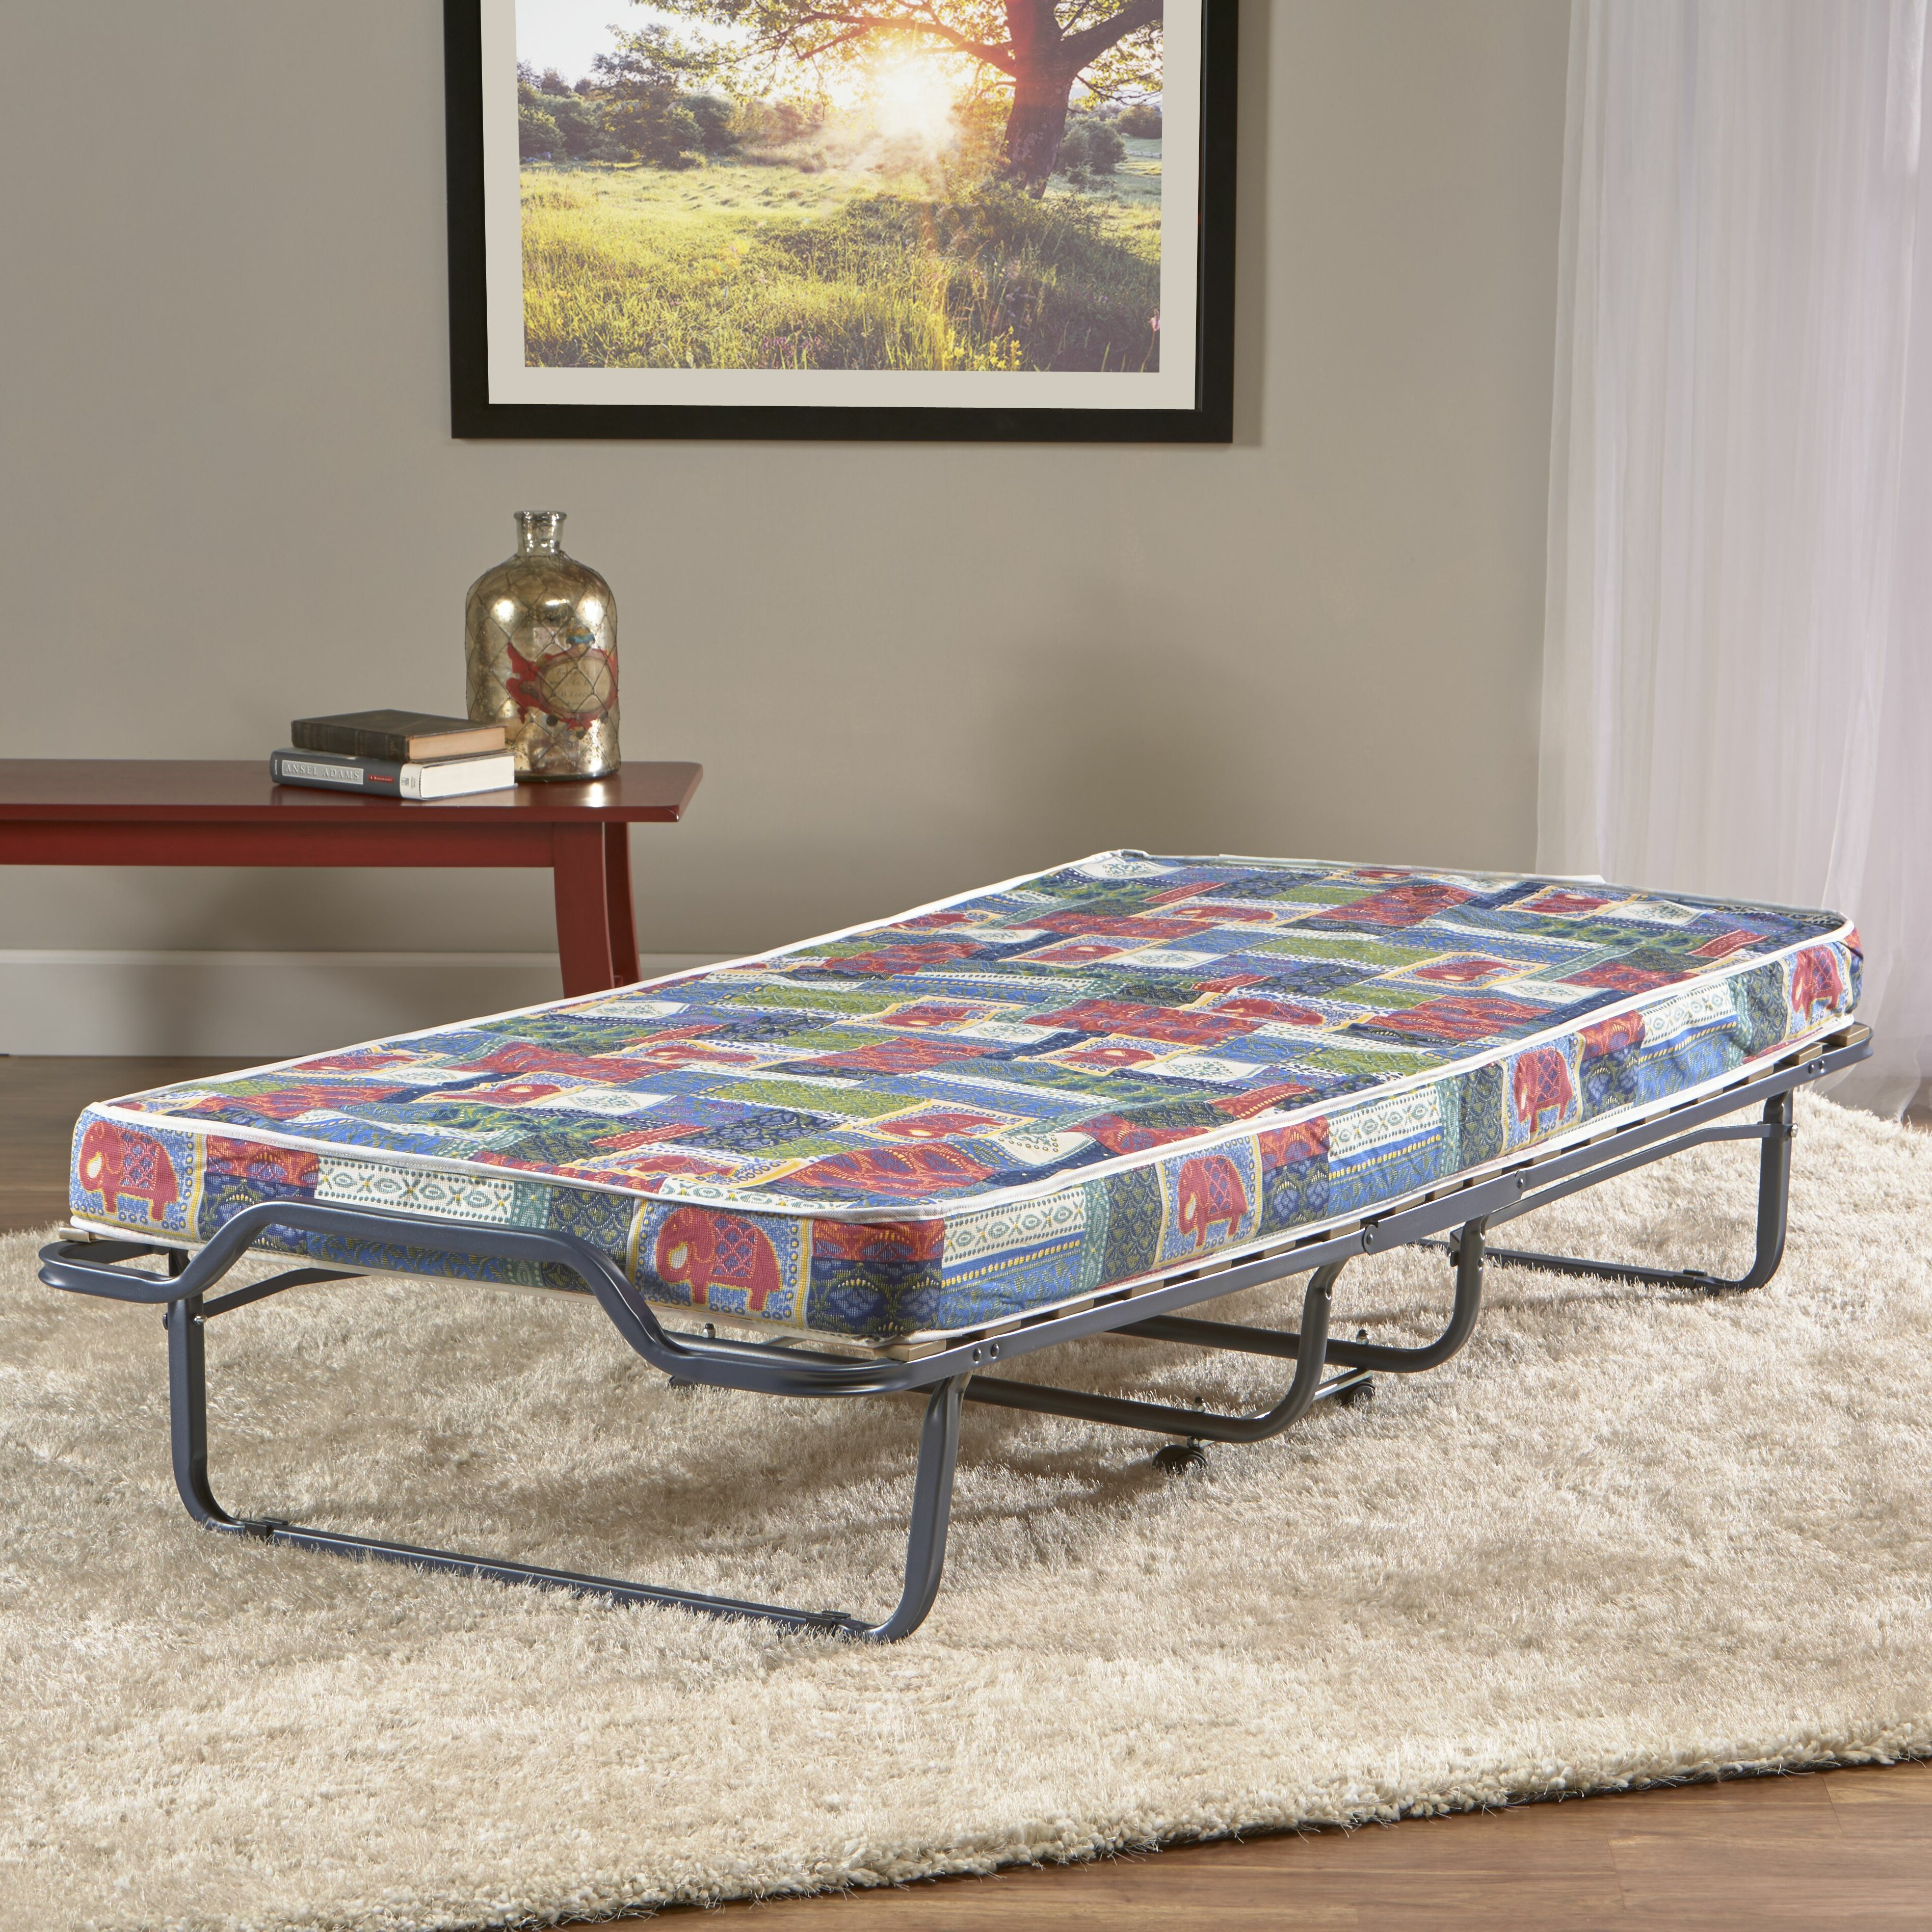 Folding Beds Reviews : Innerspace luxury products folding bed reviews wayfair